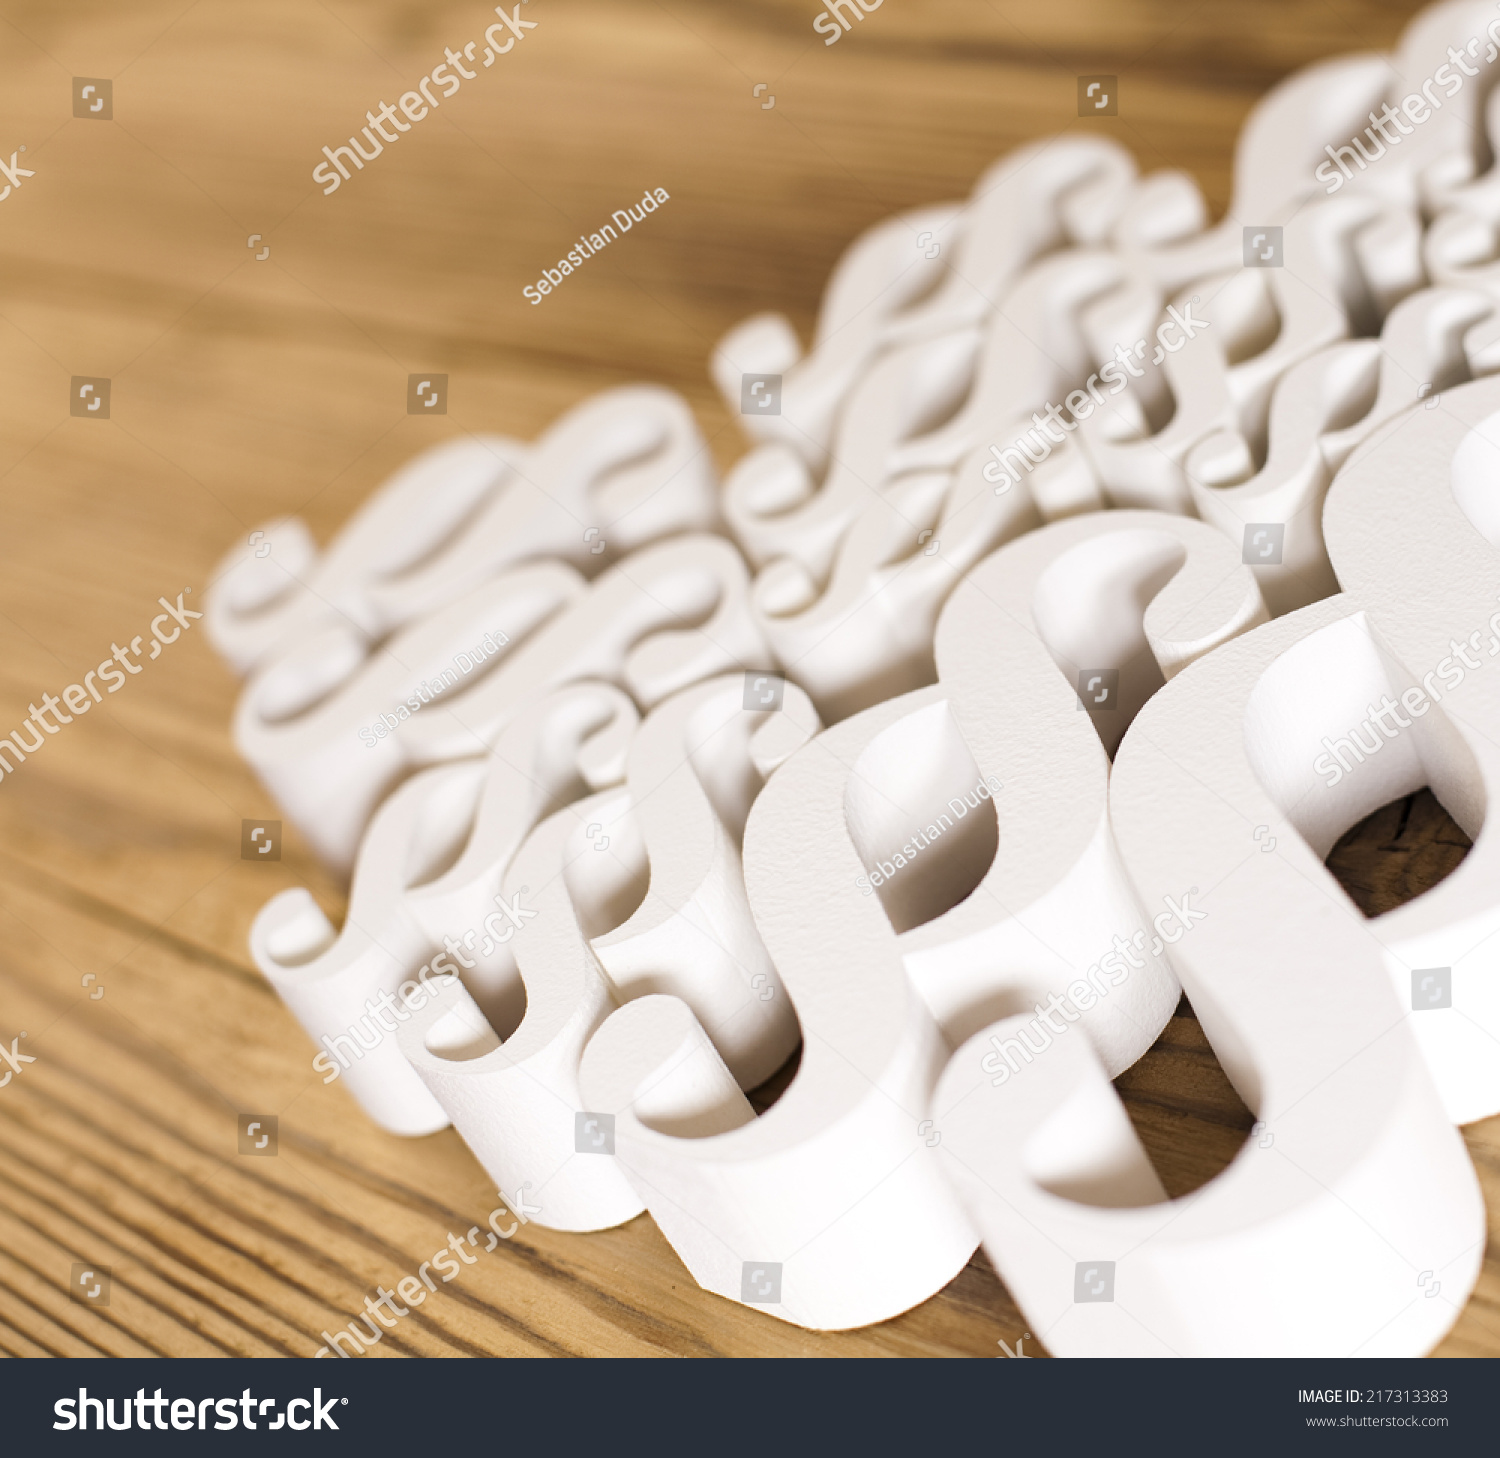 Paragraph sign symbol stock photo 217313383 shutterstock paragraph sign symbol buycottarizona Gallery